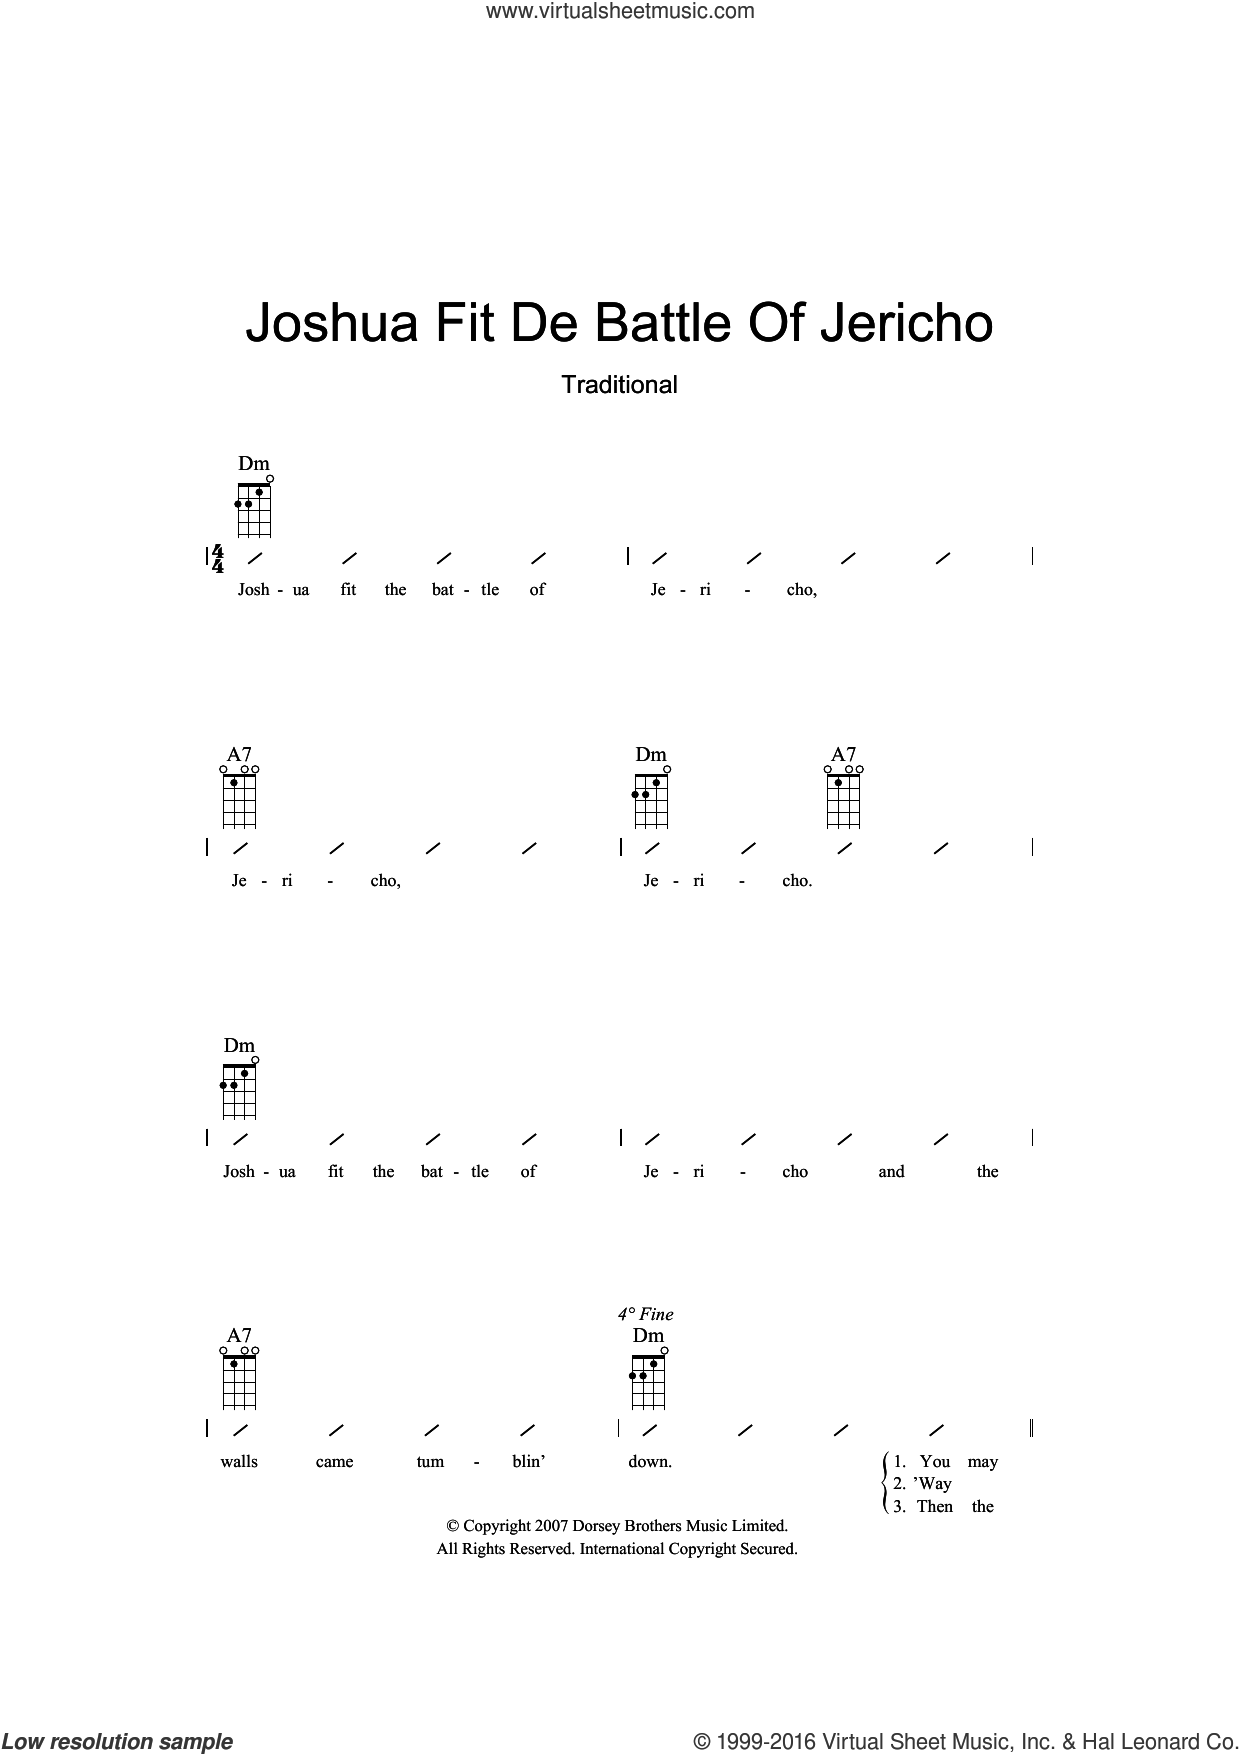 Joshua Fit De Battle Of Jericho sheet music for ukulele (chords), intermediate